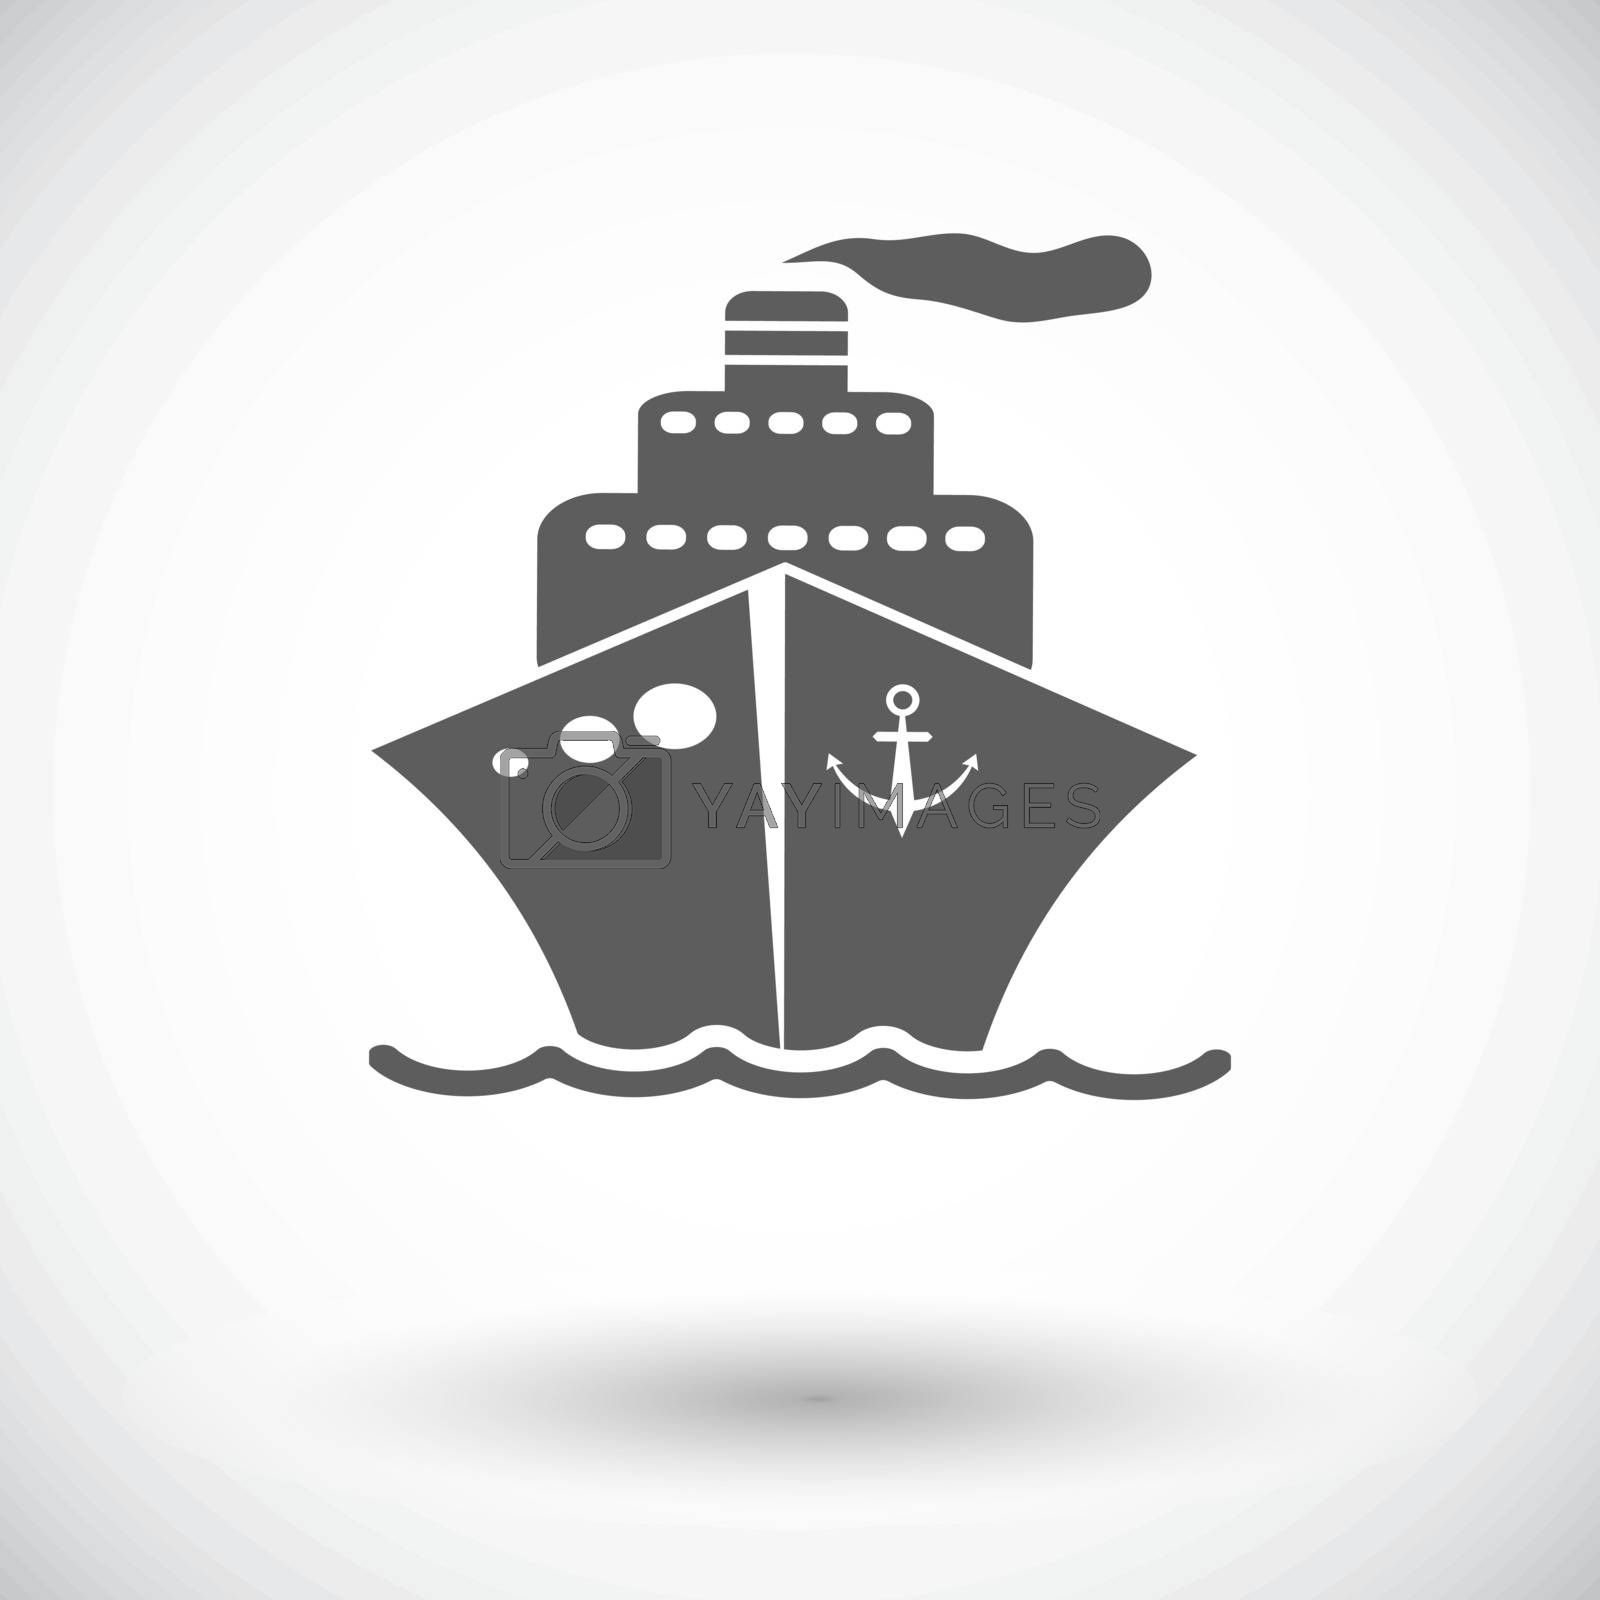 Ship icon. by smoki